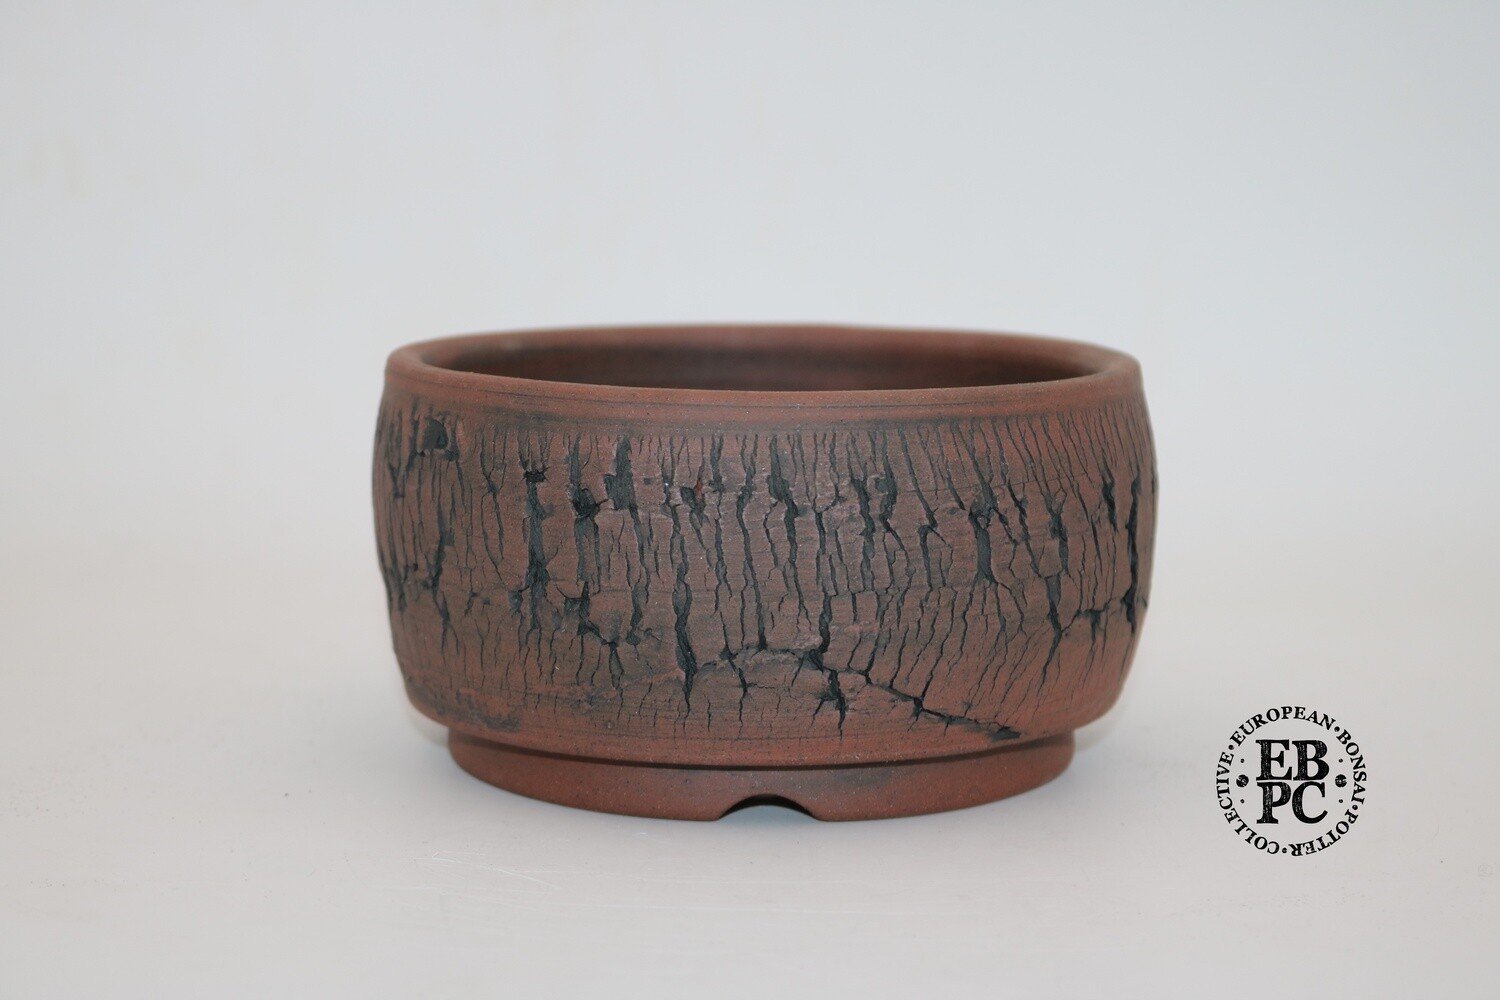 Paul Rogers Ceramics - 14cm; Unglazed; Round; Repeat Crackle Finish; Browns; EBPC Stamped;